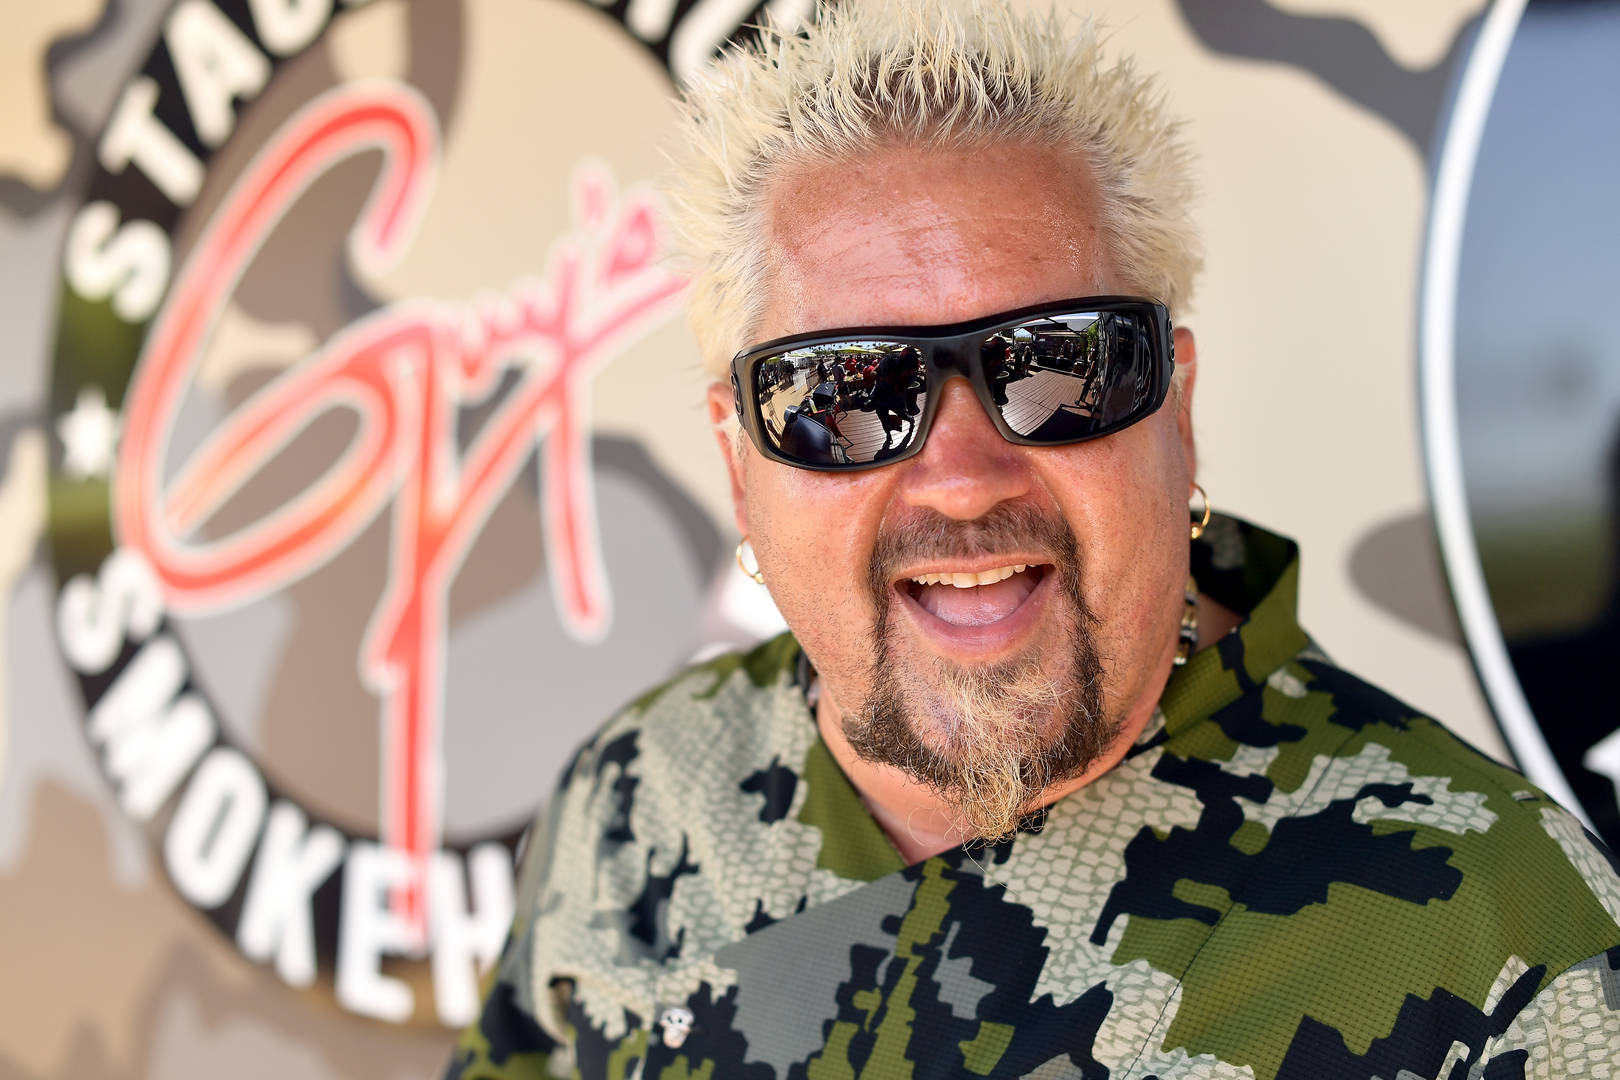 Guy Fieri raises more than US$20 million for out-of-work restaurant workers